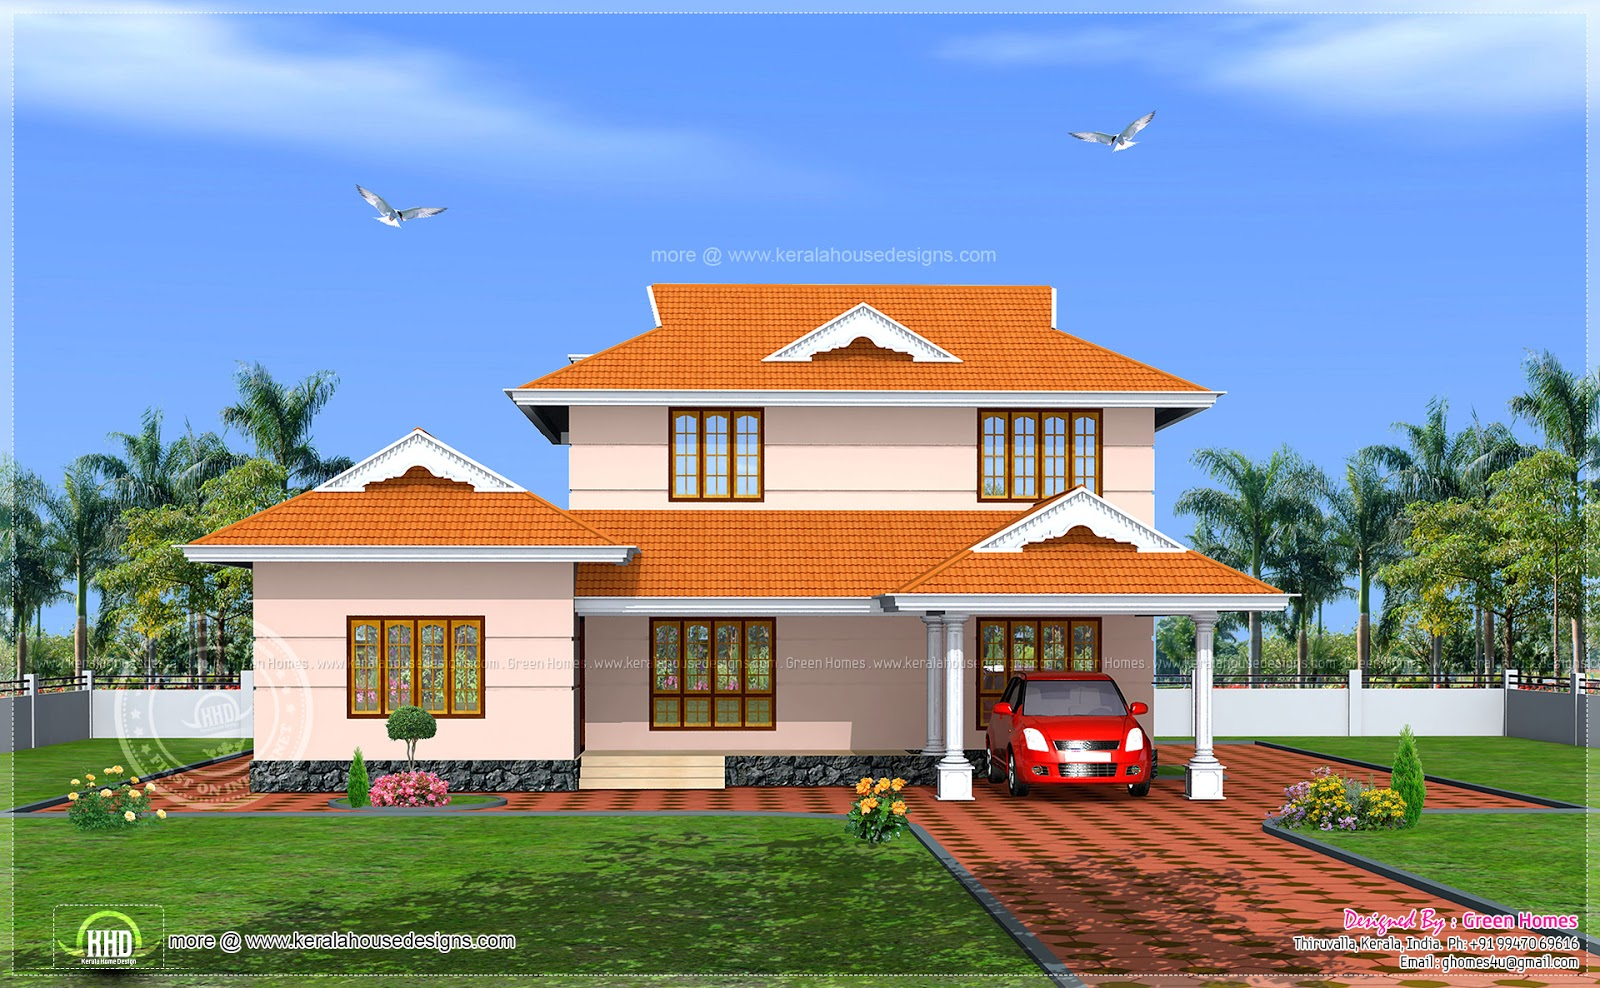 Home design kerala model house q for Home design 4u kerala